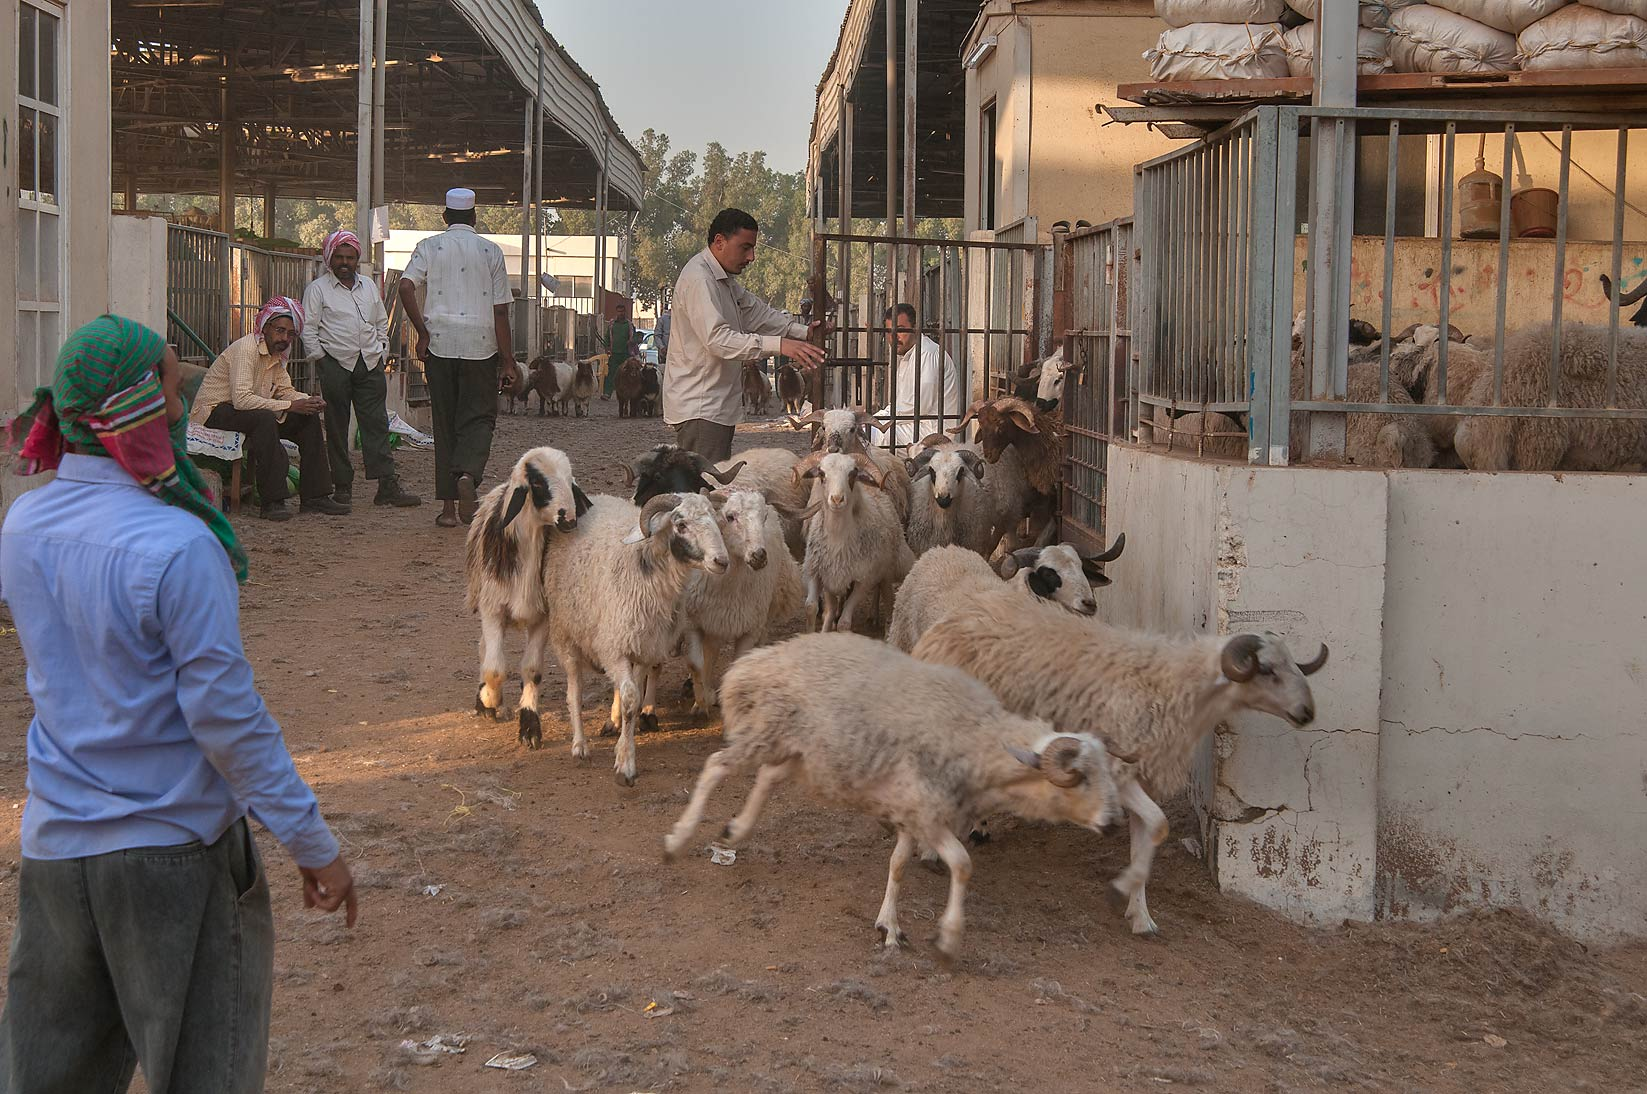 Moving sheep in Livestock Market, Wholesale Markets area. Doha, Qatar